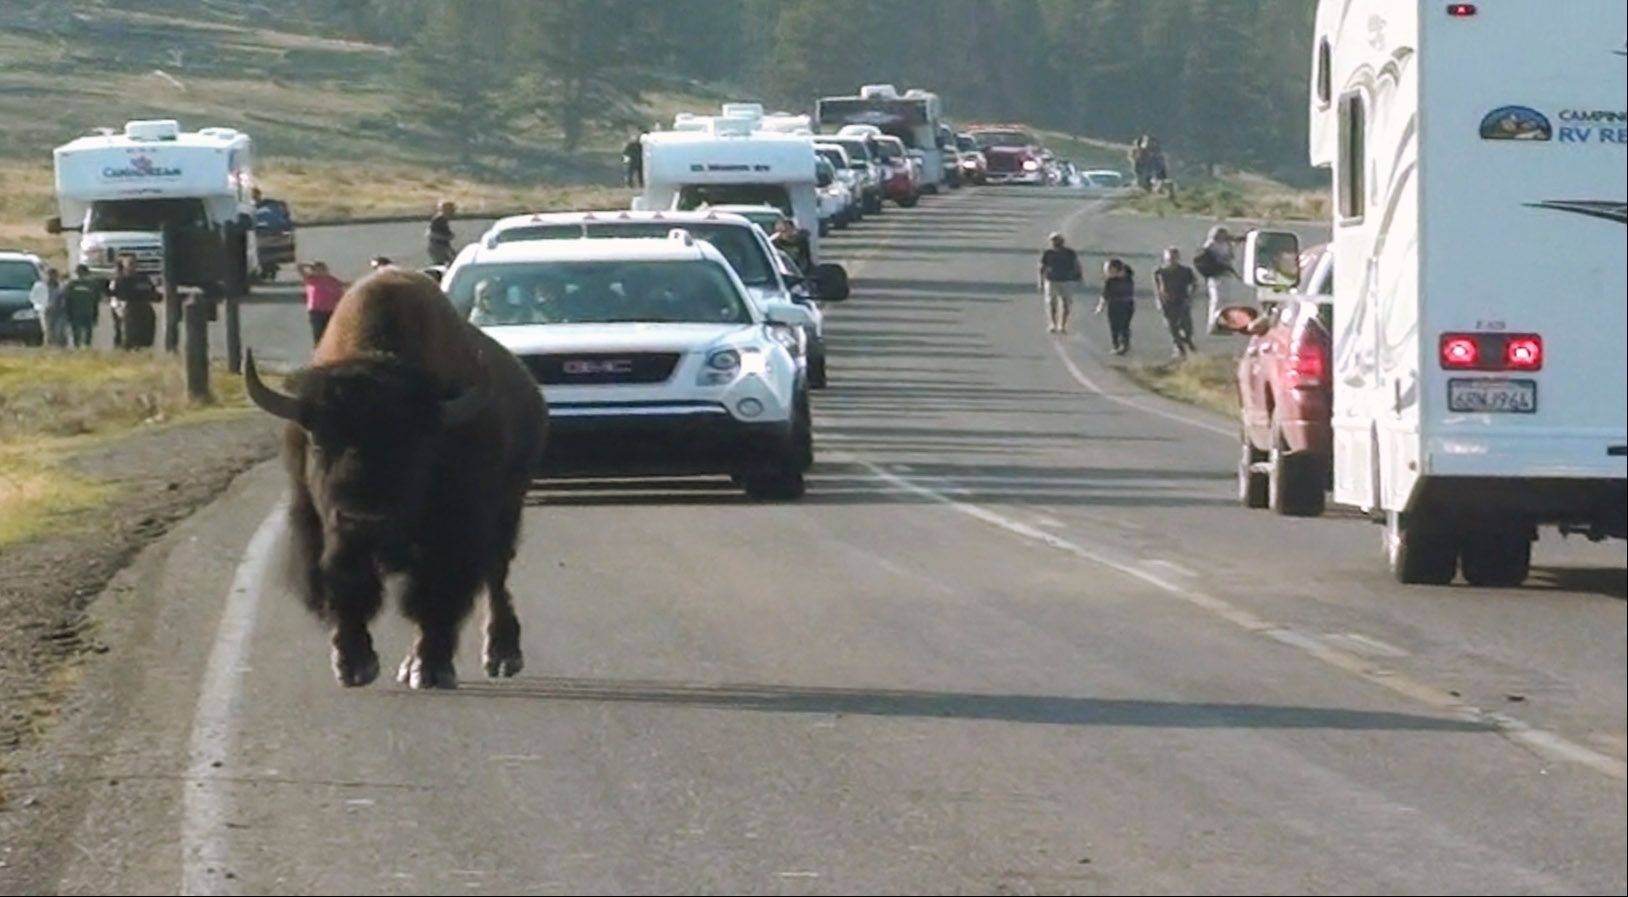 A buffalo blocks up traffic in Yellowstone on August 15th. Bison cross the road, but this guy owns the road, and he knows it.